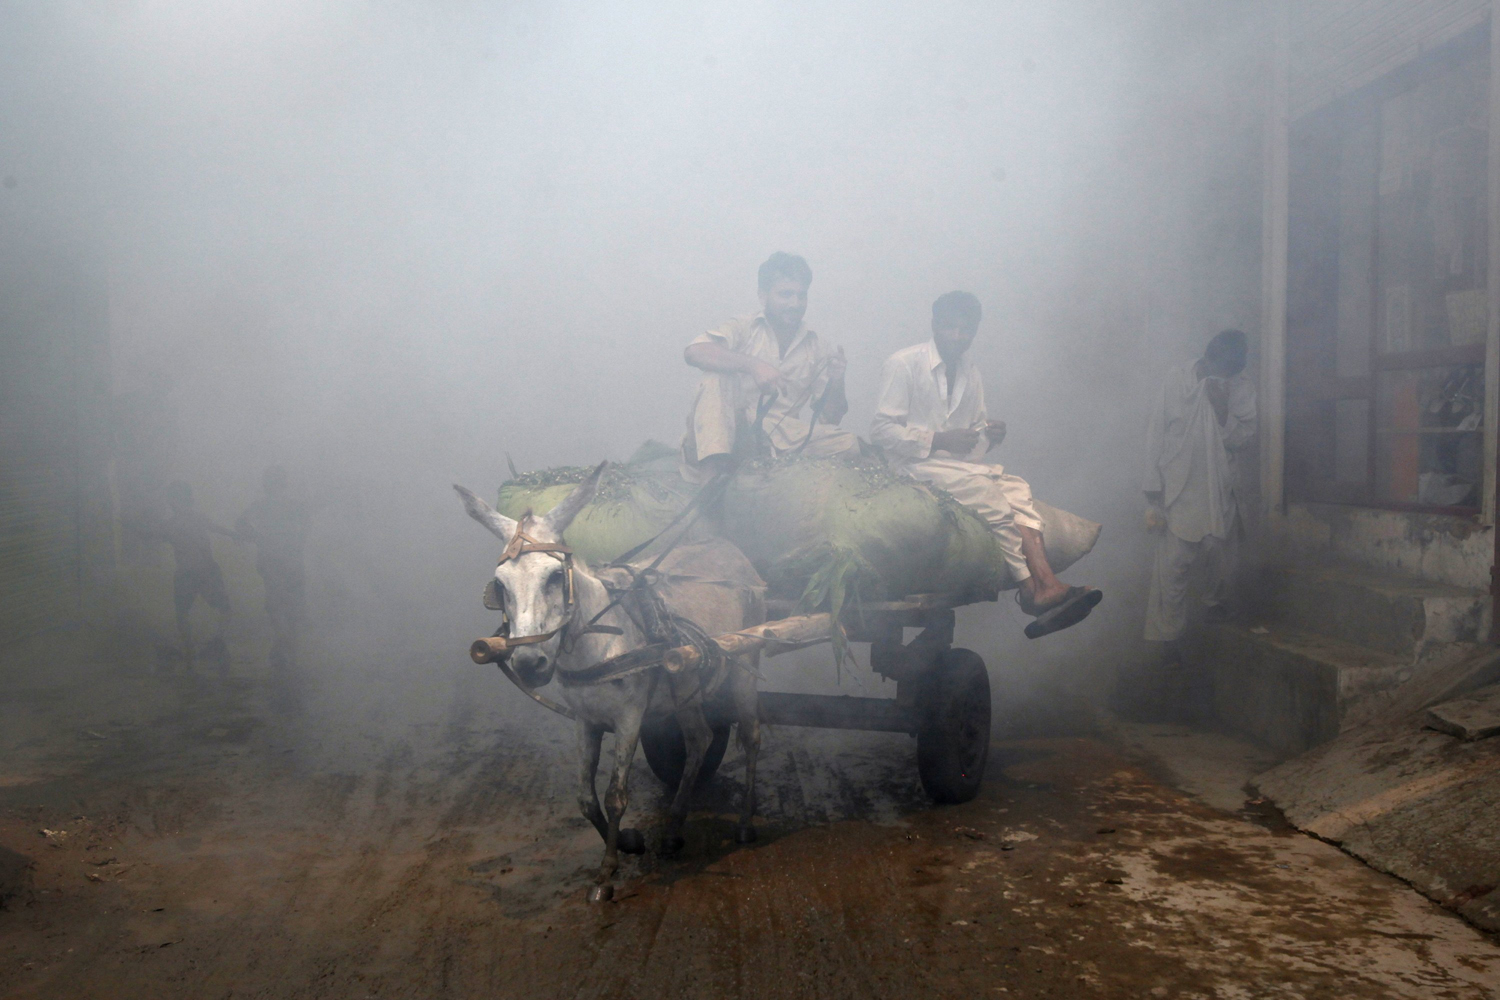 September 9, 2011. Men ride a donkey cart through vapor after the area was fumigated in the outskirts of Lahore. Cities across Pakistan launched a fumigation campaign to eliminate mosquitoes and control breeding to protect citizens from dengue fever.